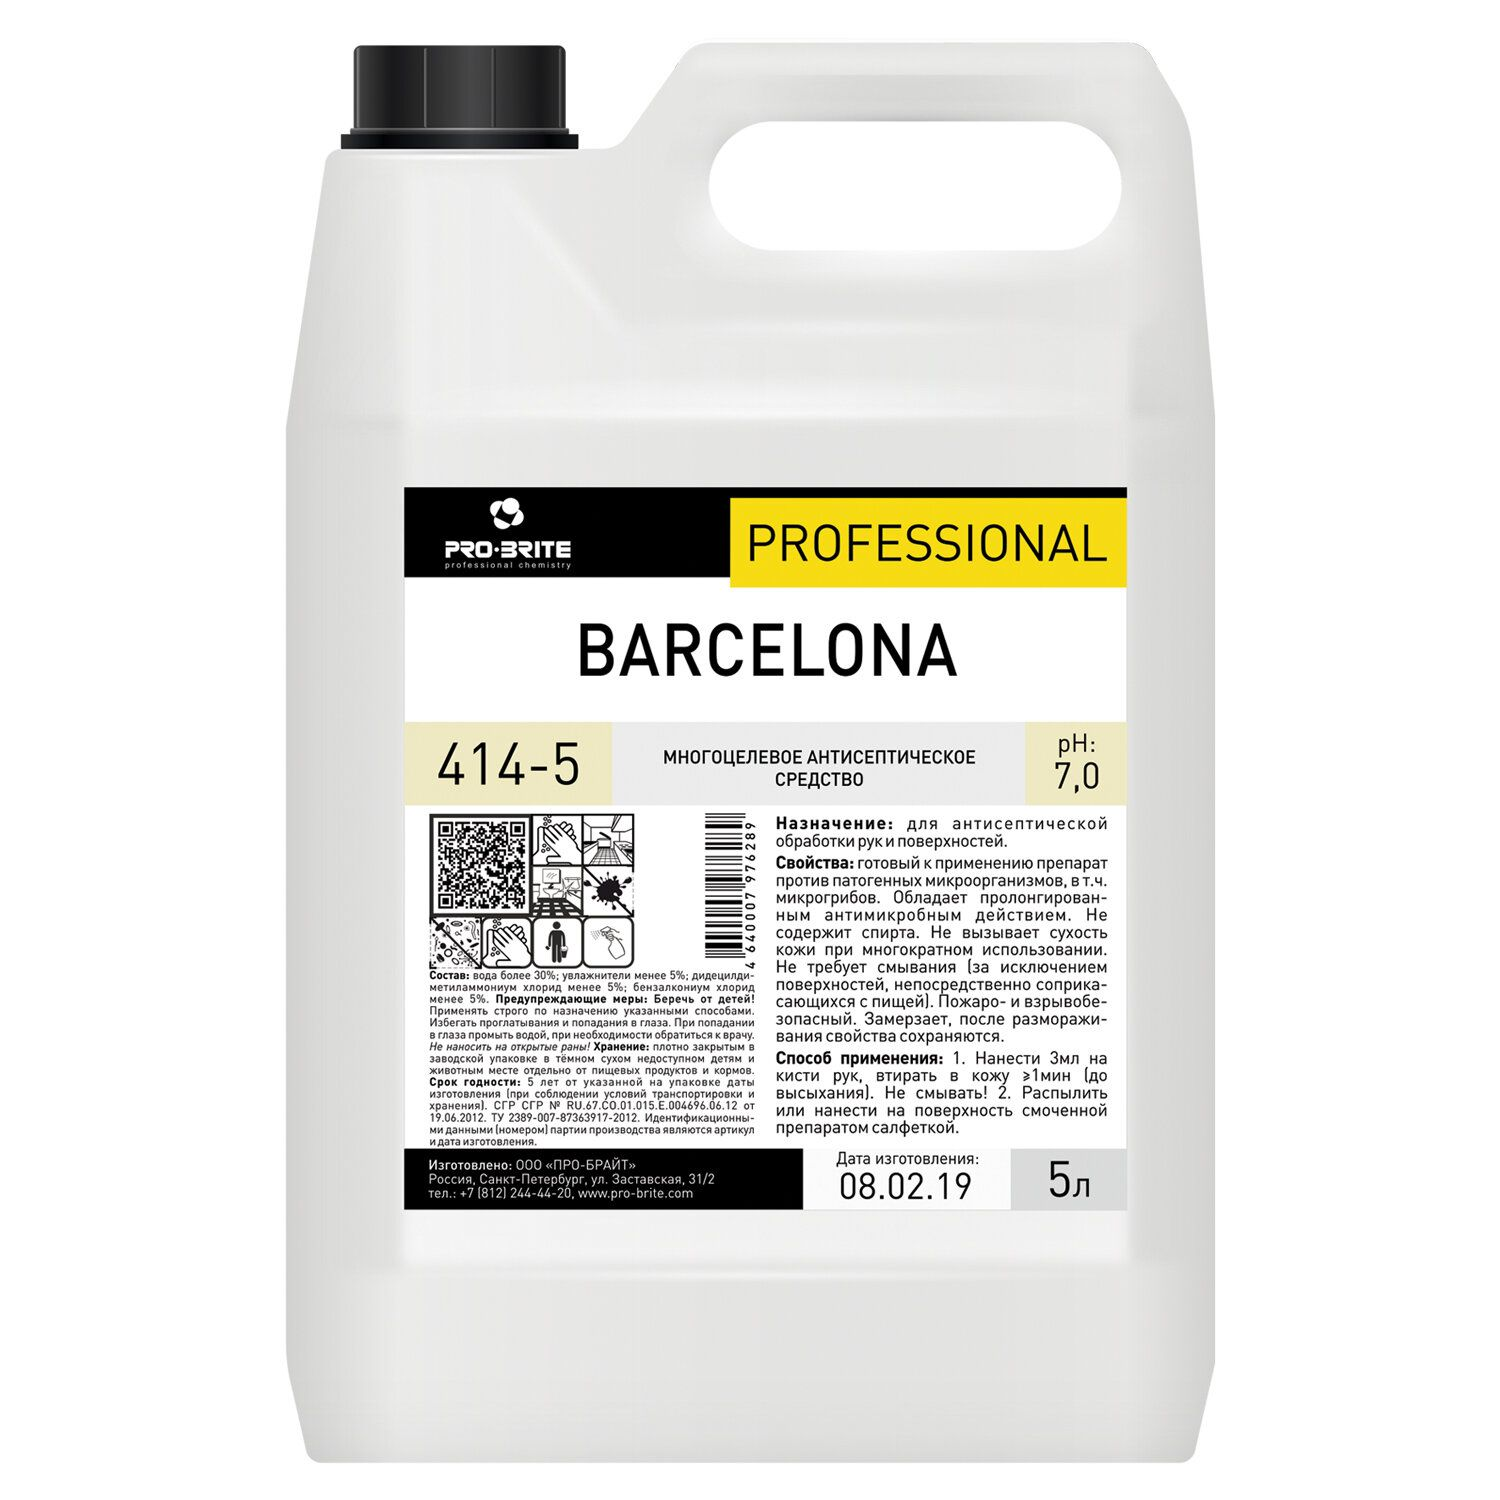 PRO-BRITE / BARCELONA skin disinfectant antiseptic based on HOUR, ready-made solution, 5 l